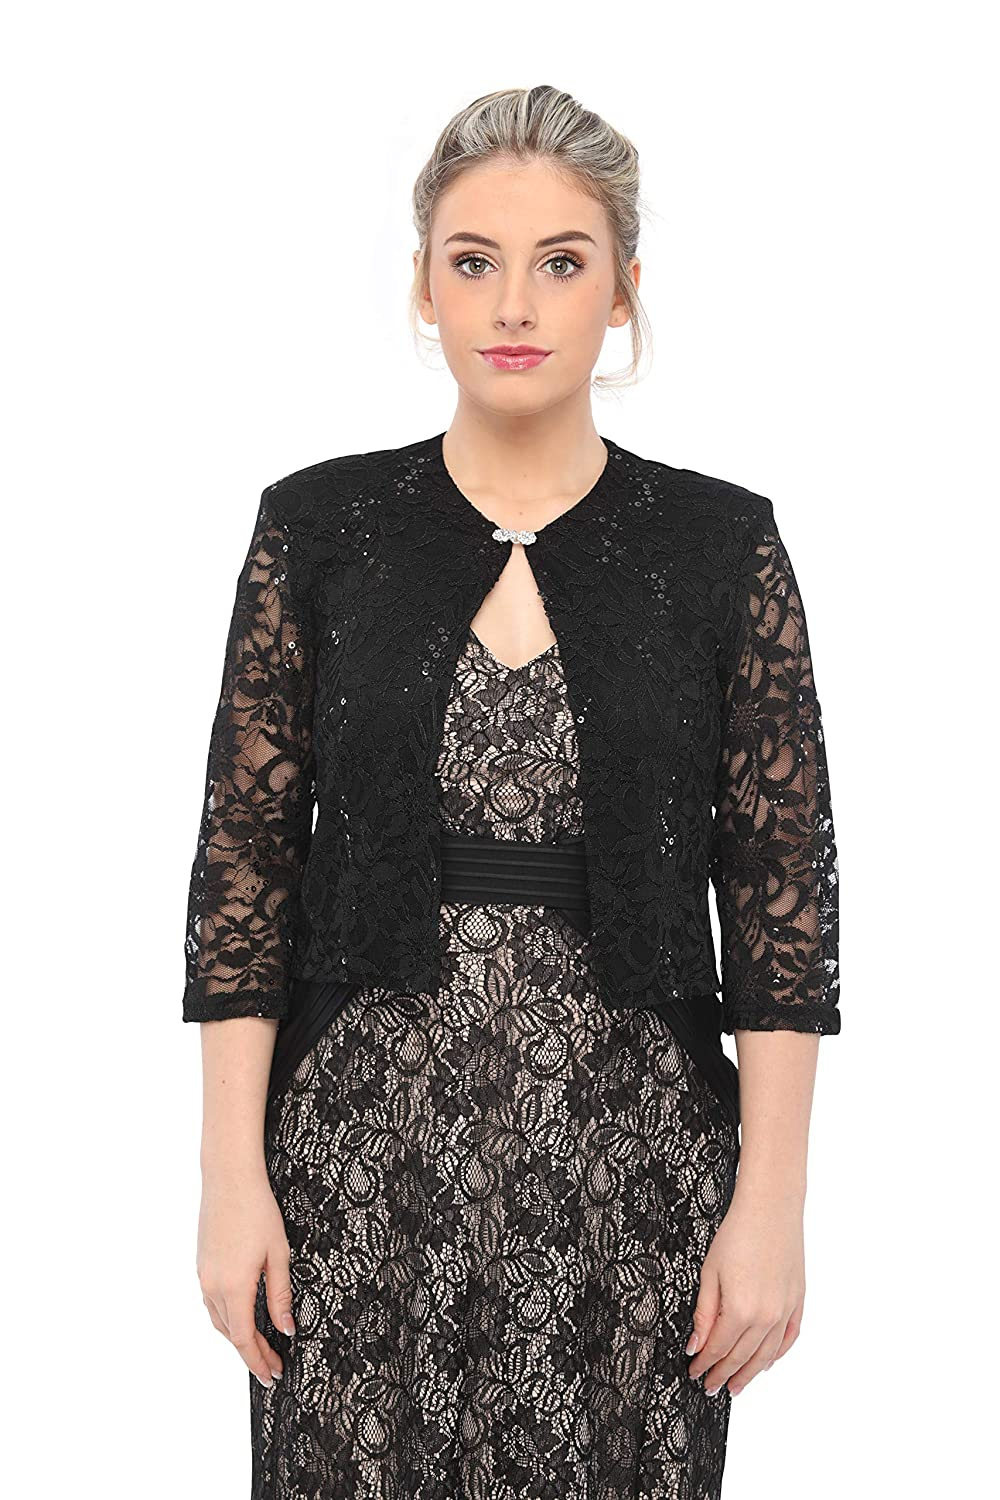 67481f15b SLEEKTRENDS Shrugs for Dresses Dressy Lace Cardigan for Women Open Front  Bolero Jacket with Sequin at Amazon Women's Clothing store: